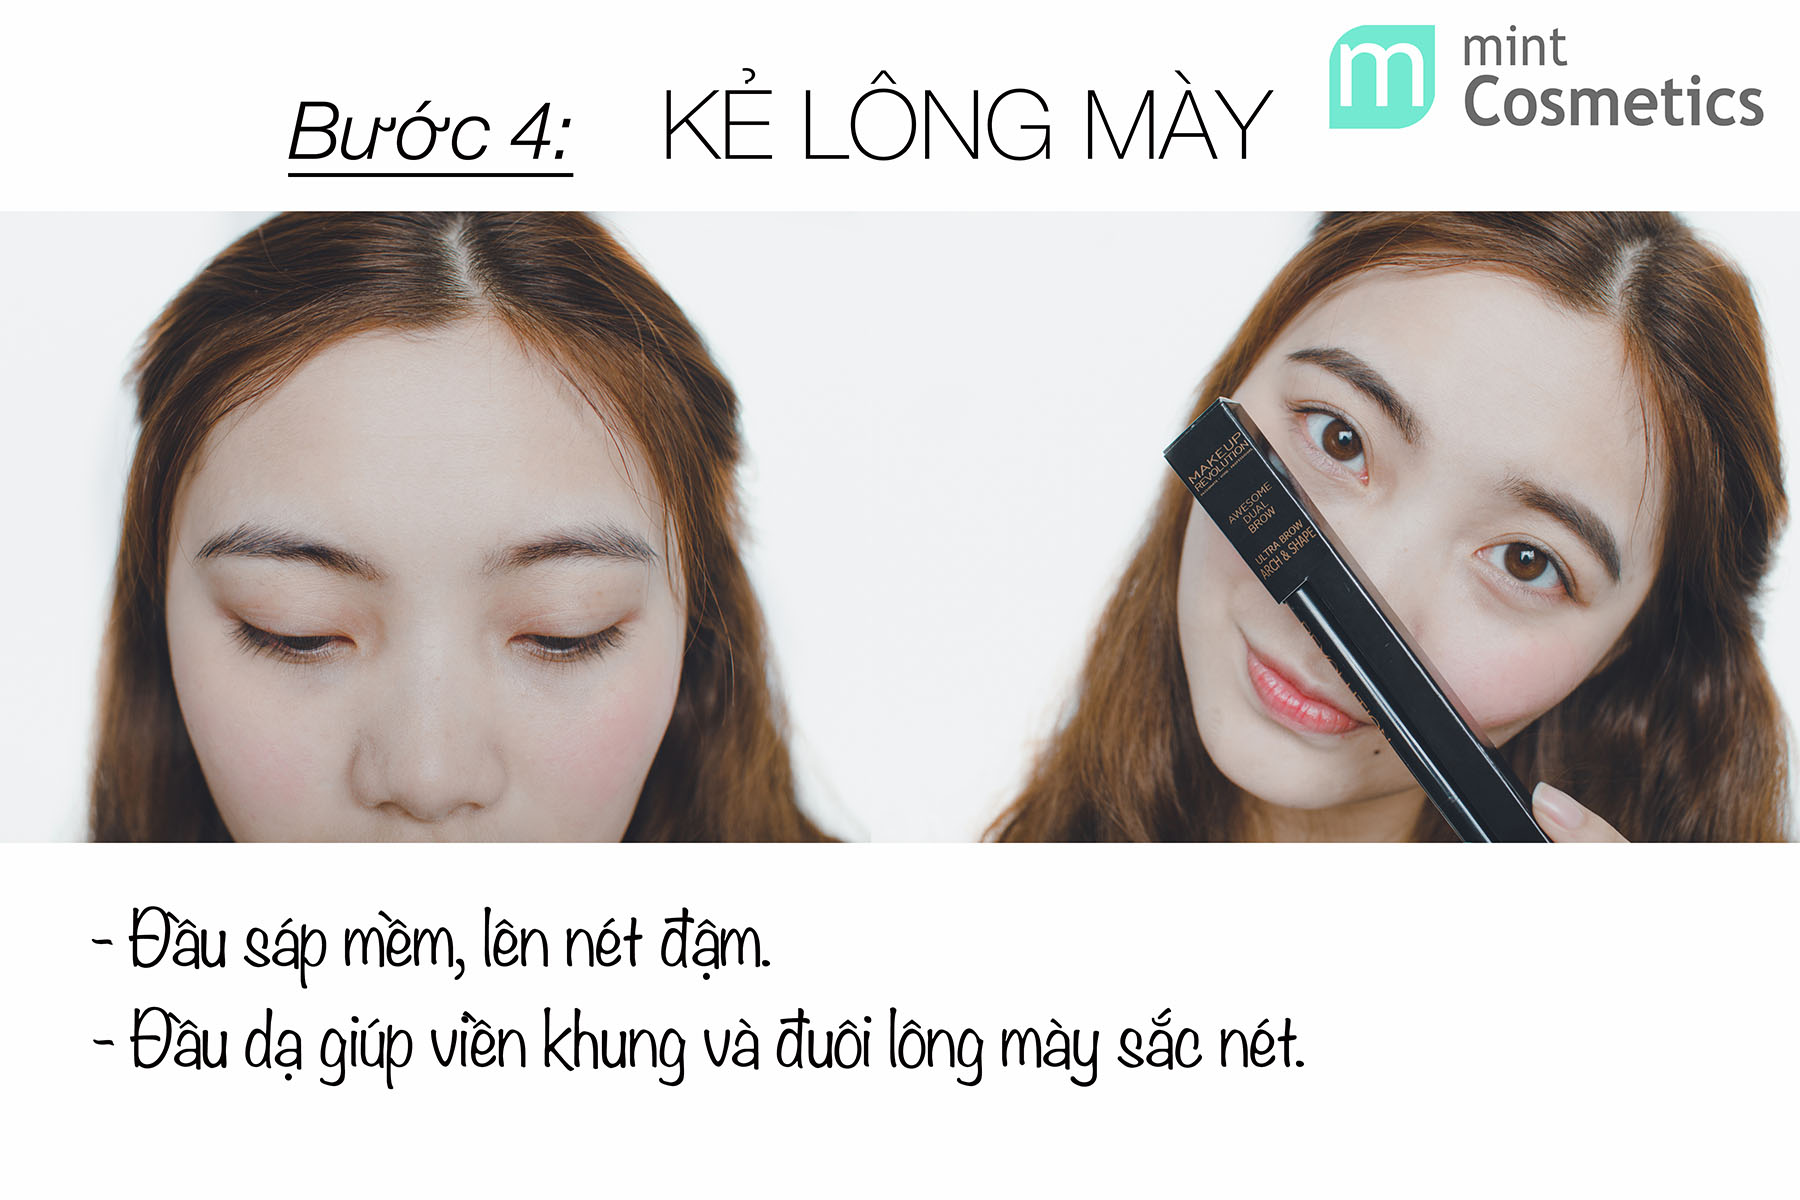 make-up-back-to-school-ke-long-may